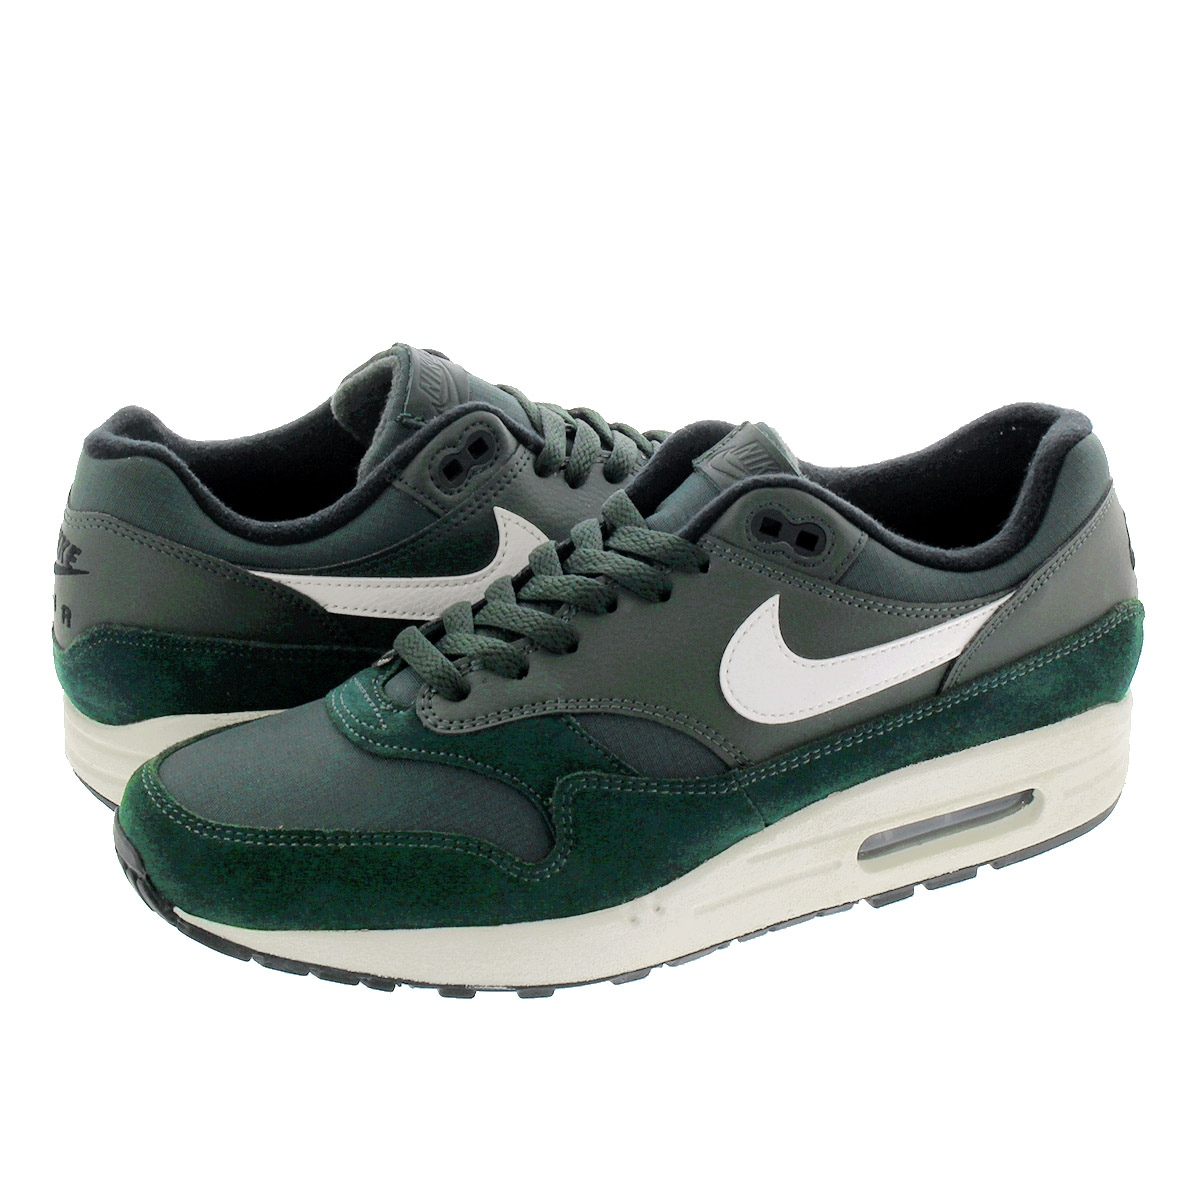 NIKE AIR MAX 1 ナイキ エア マックス 1 OUTDOOR GREEN/SAIL/BLACK ah8145-303